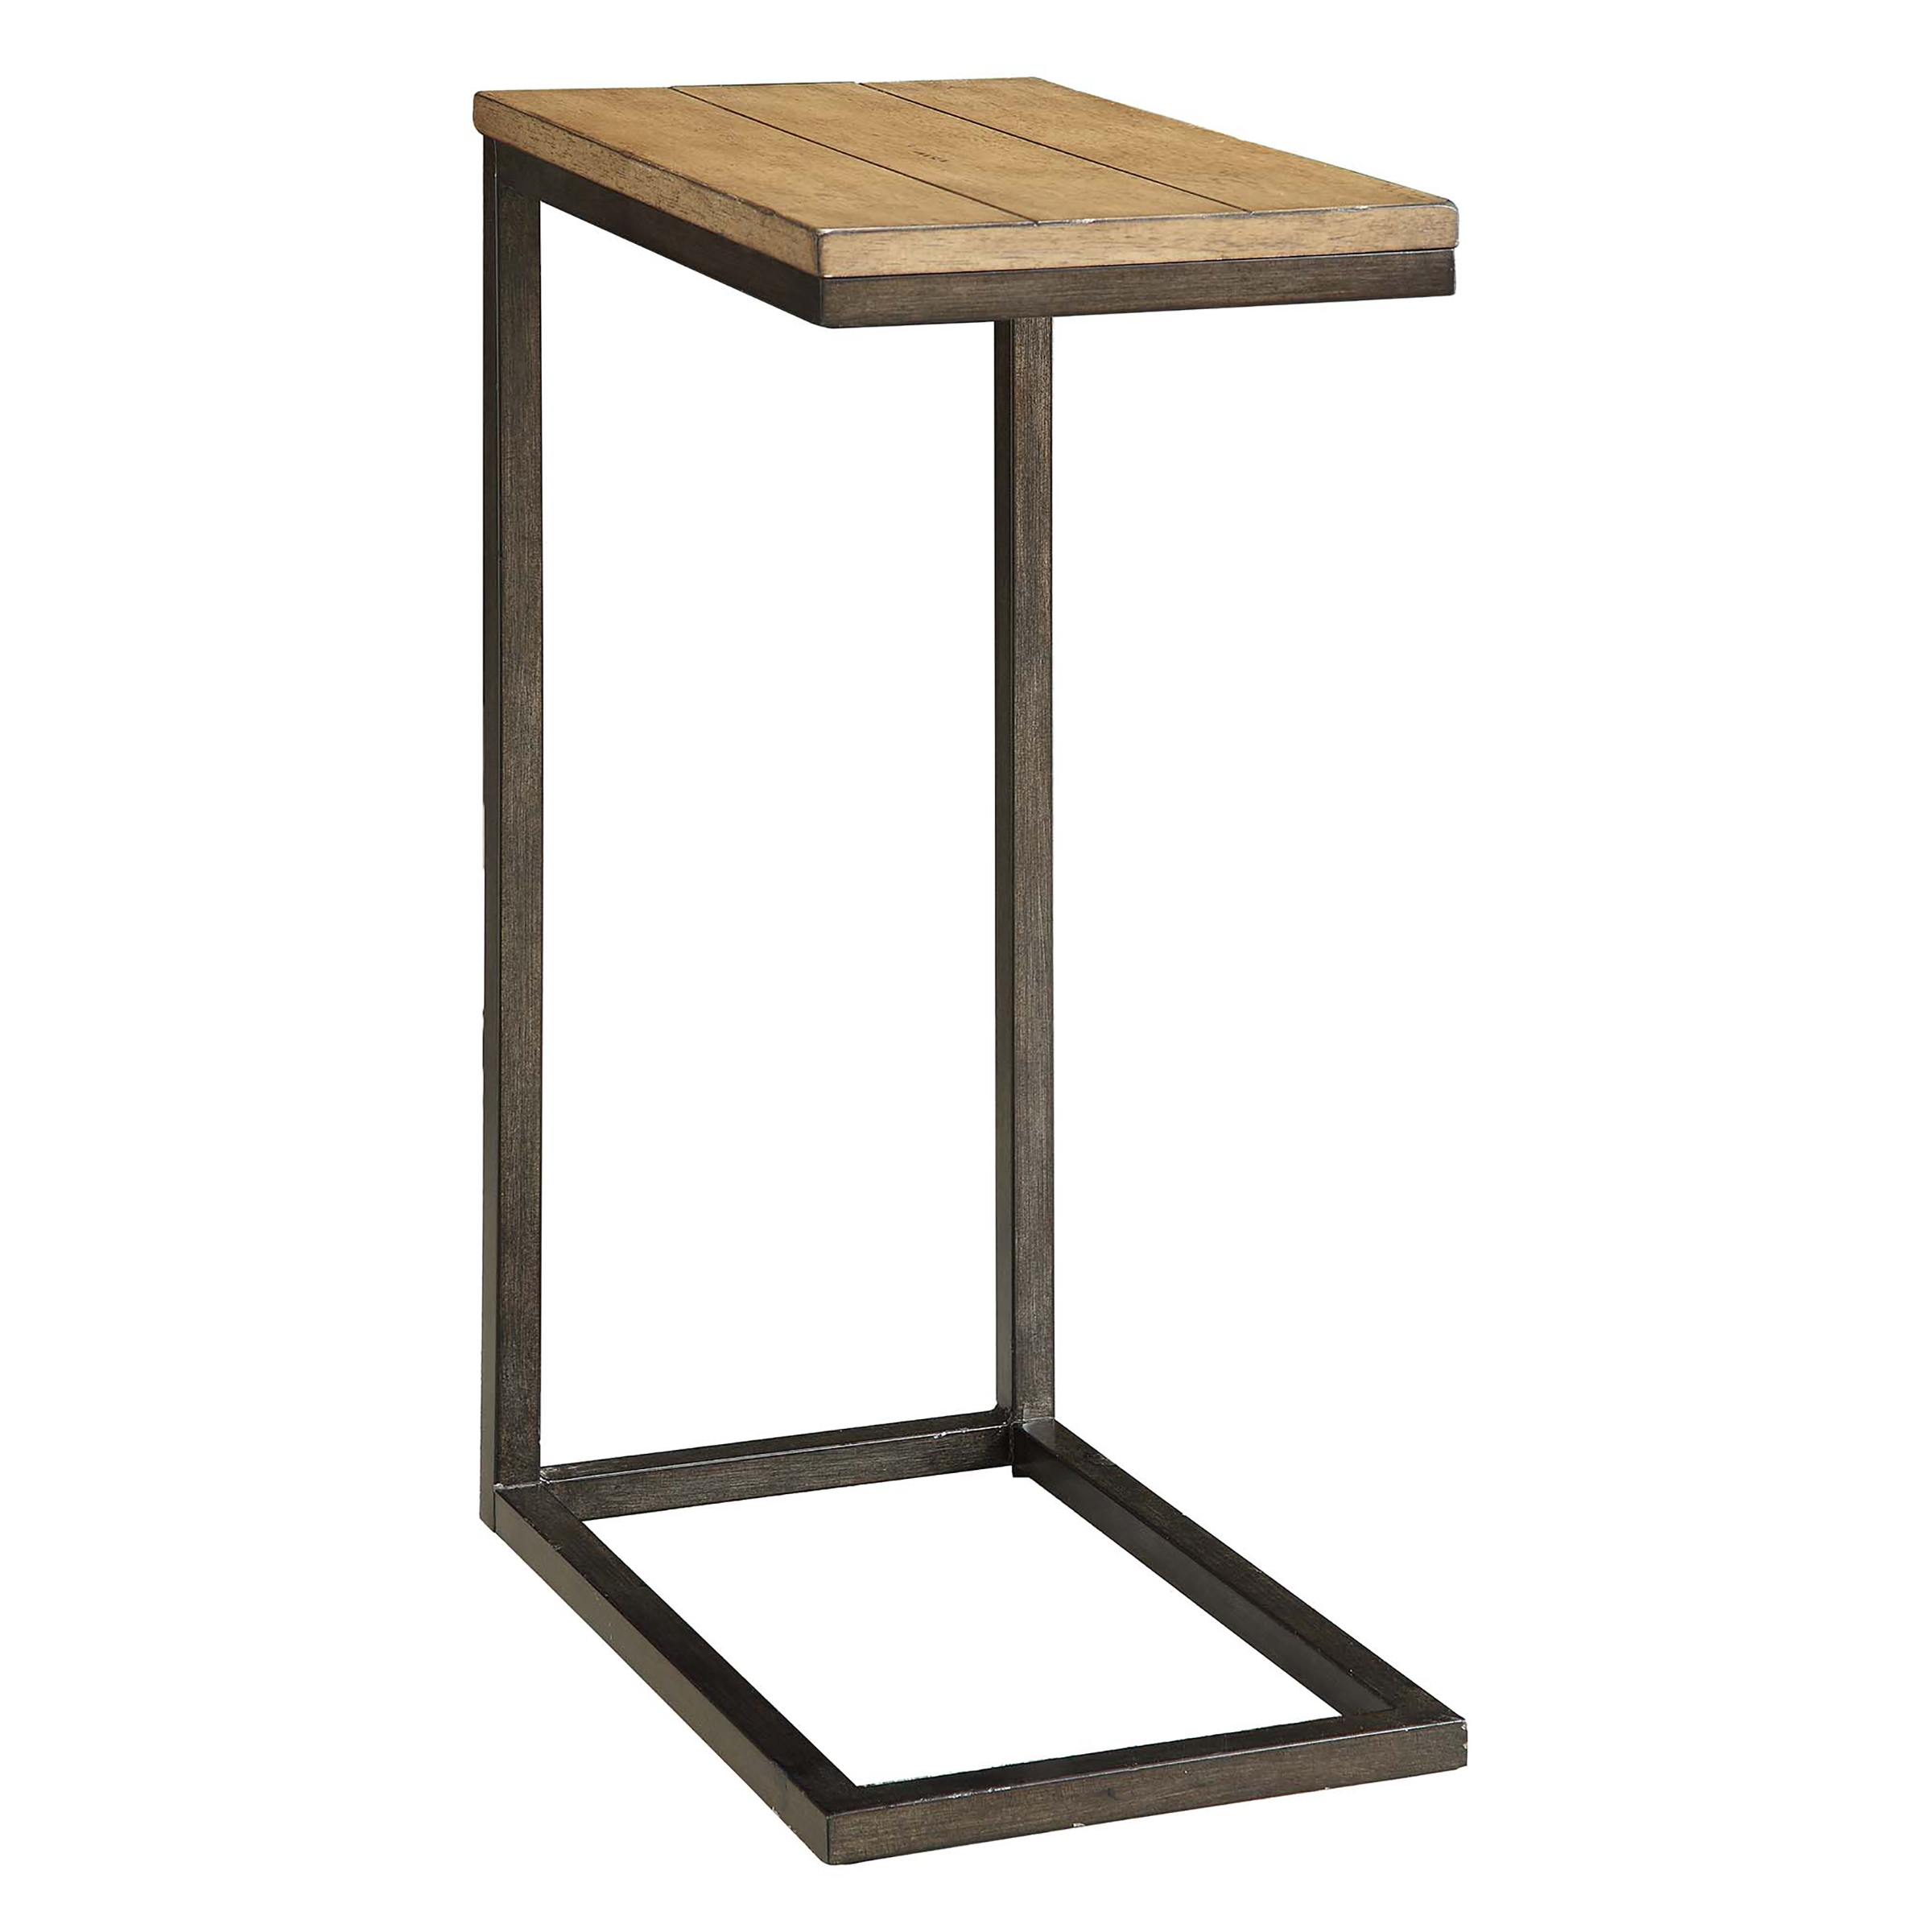 Ansley Computer Tray Table, Harvest Oak/Aged Iron